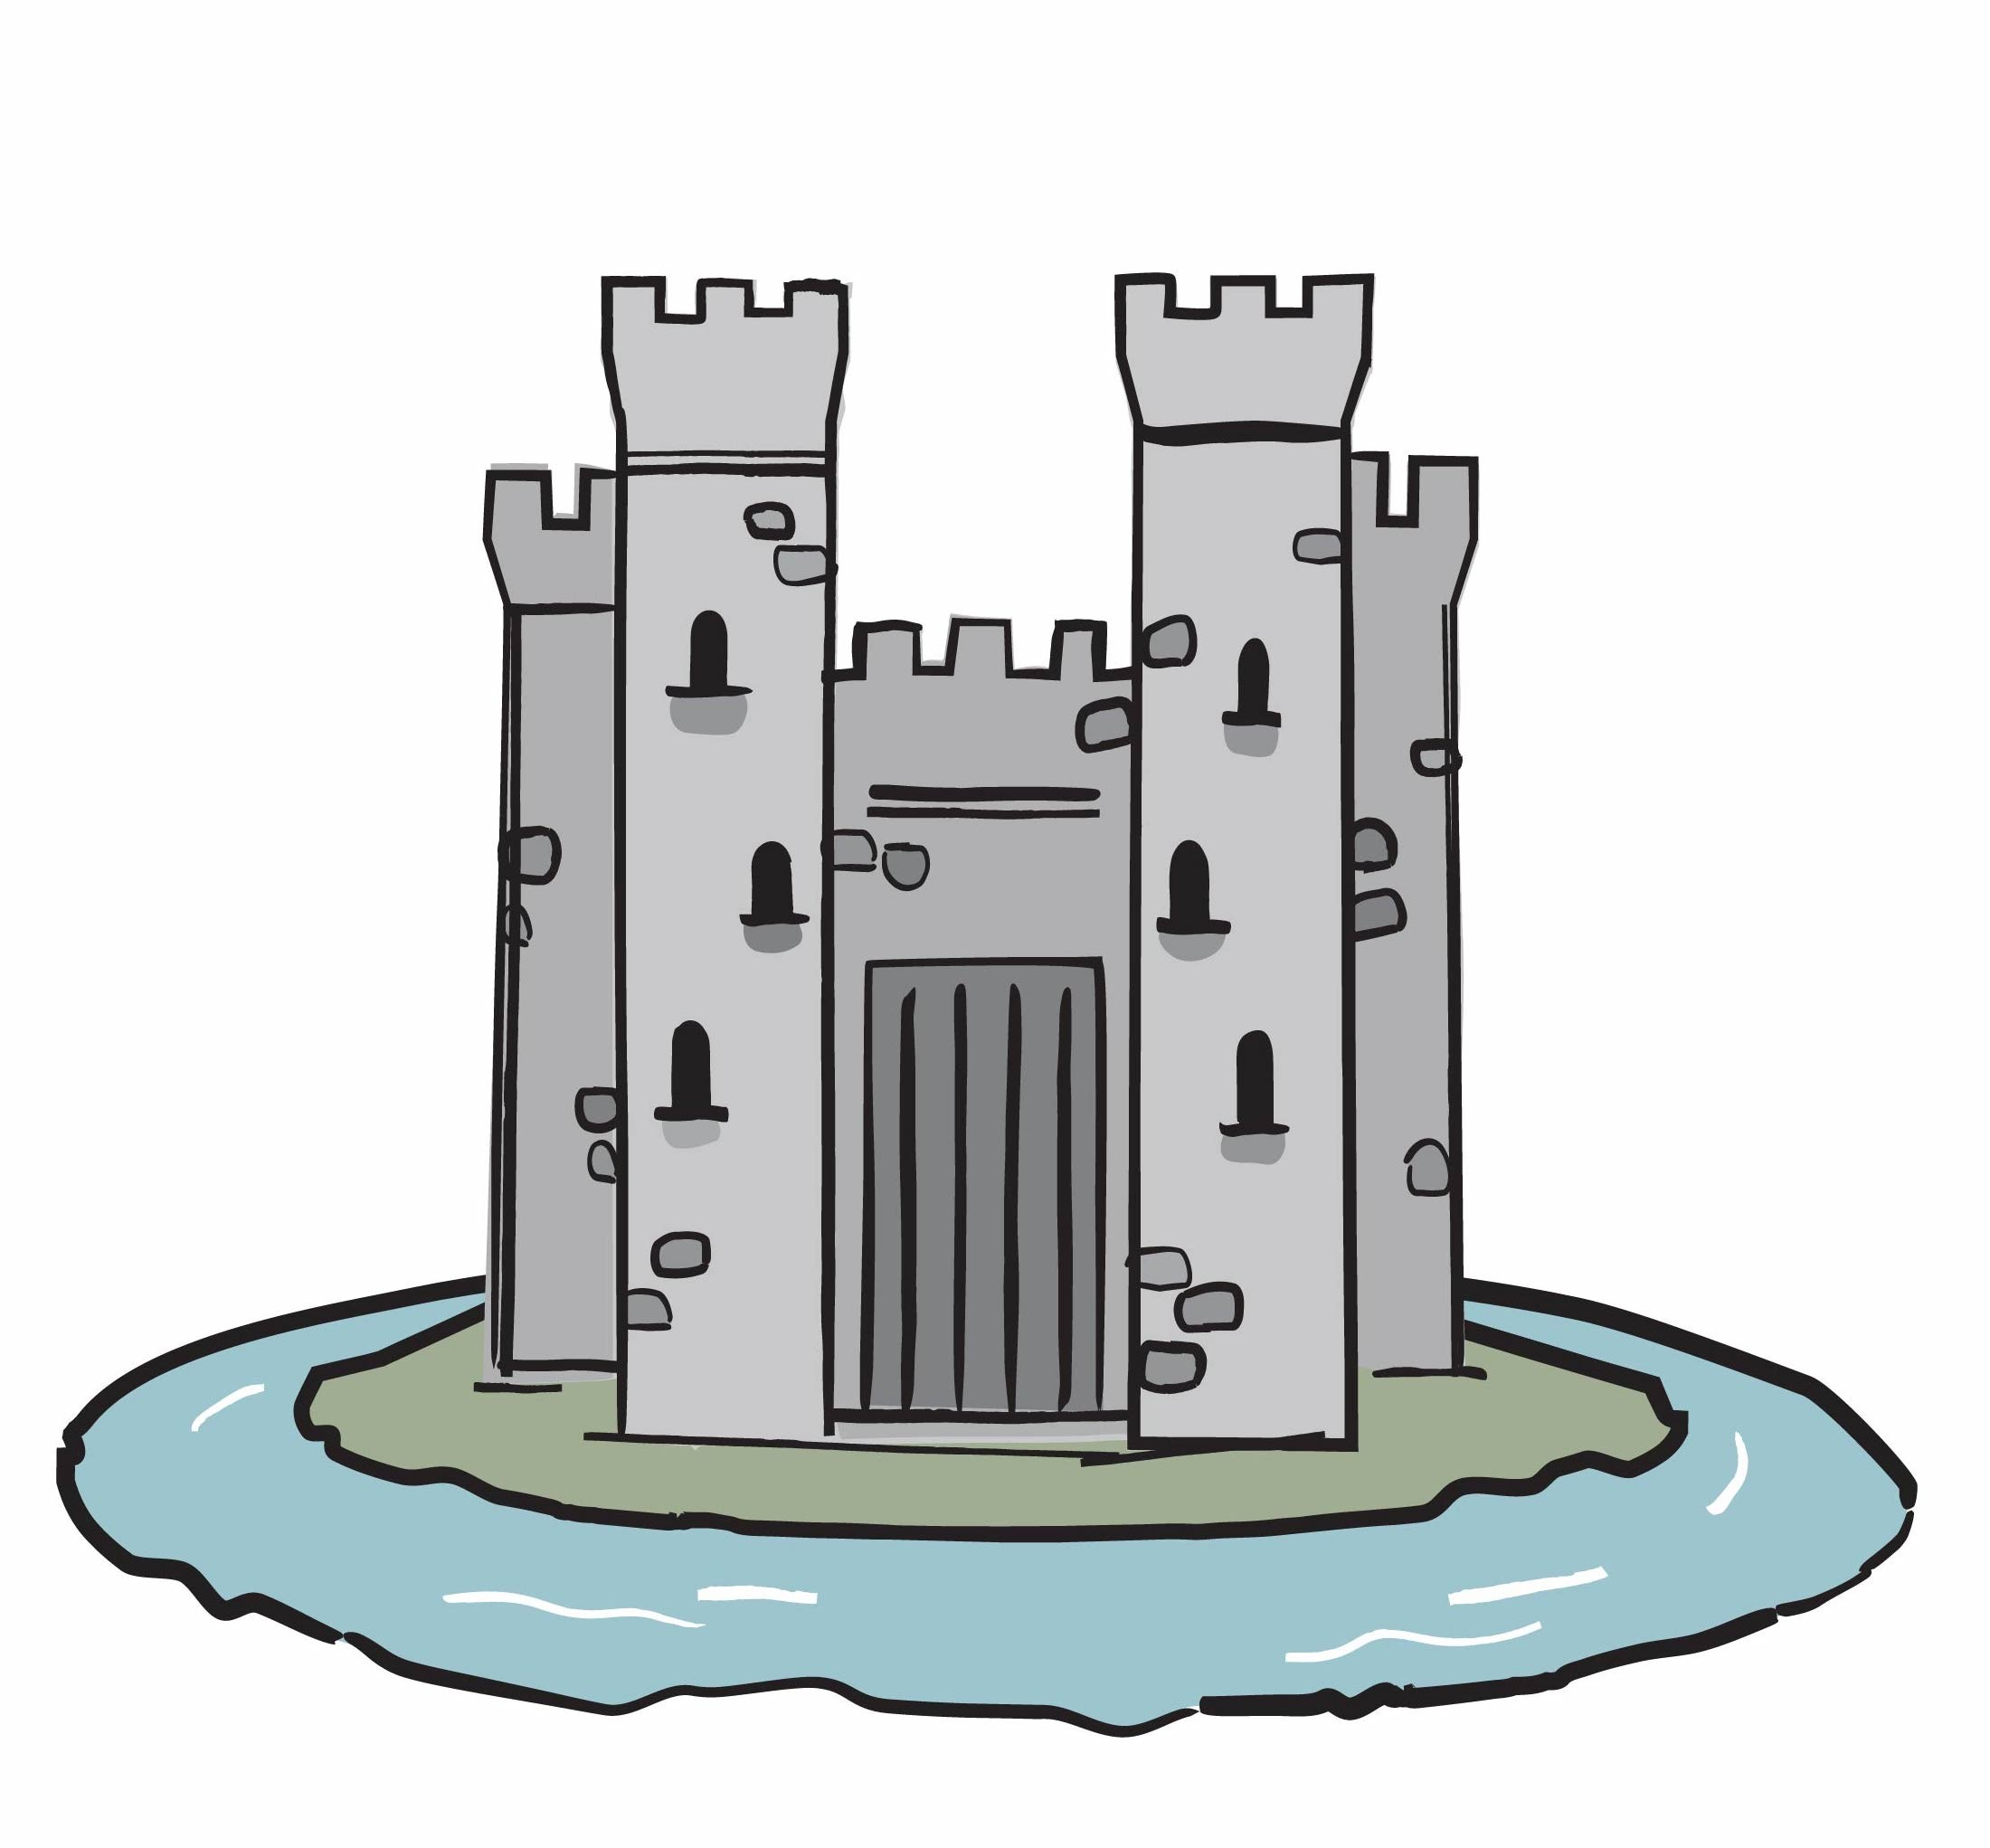 Over the moat clipart vector freeuse The Agency Moat: Sustainable Competitive Advantage vector freeuse